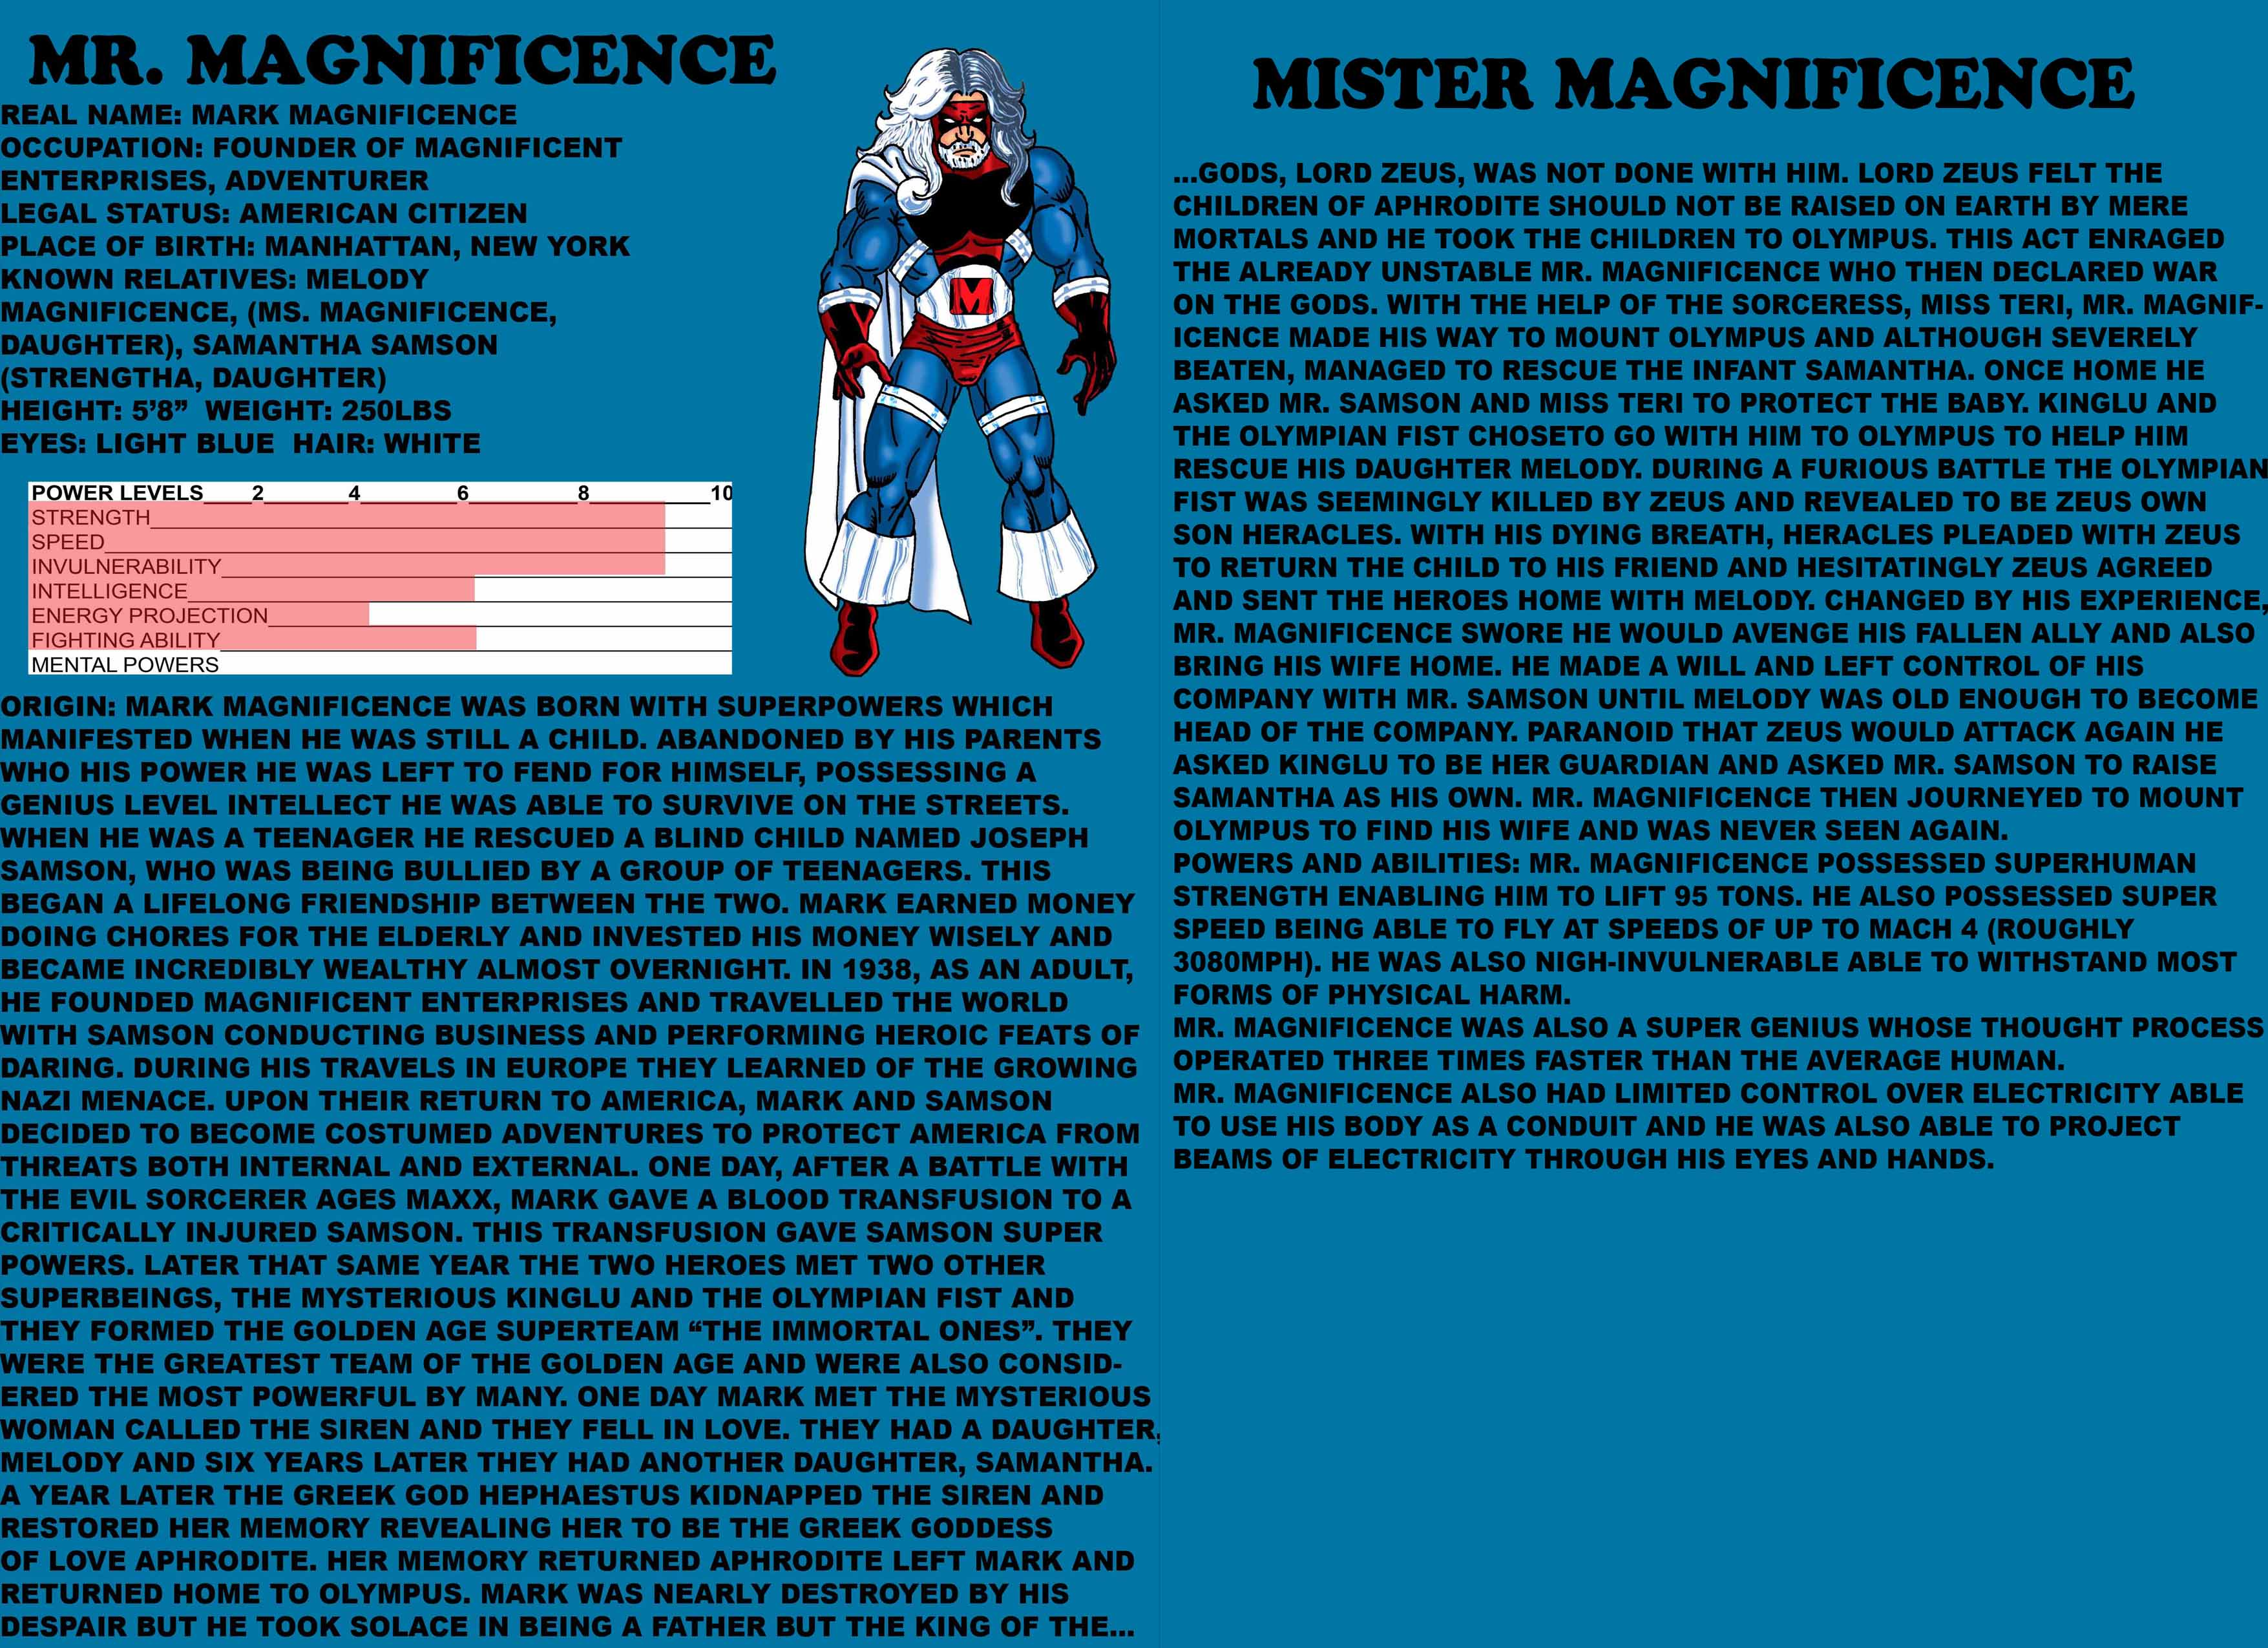 Golden Age: Mister Magnificence